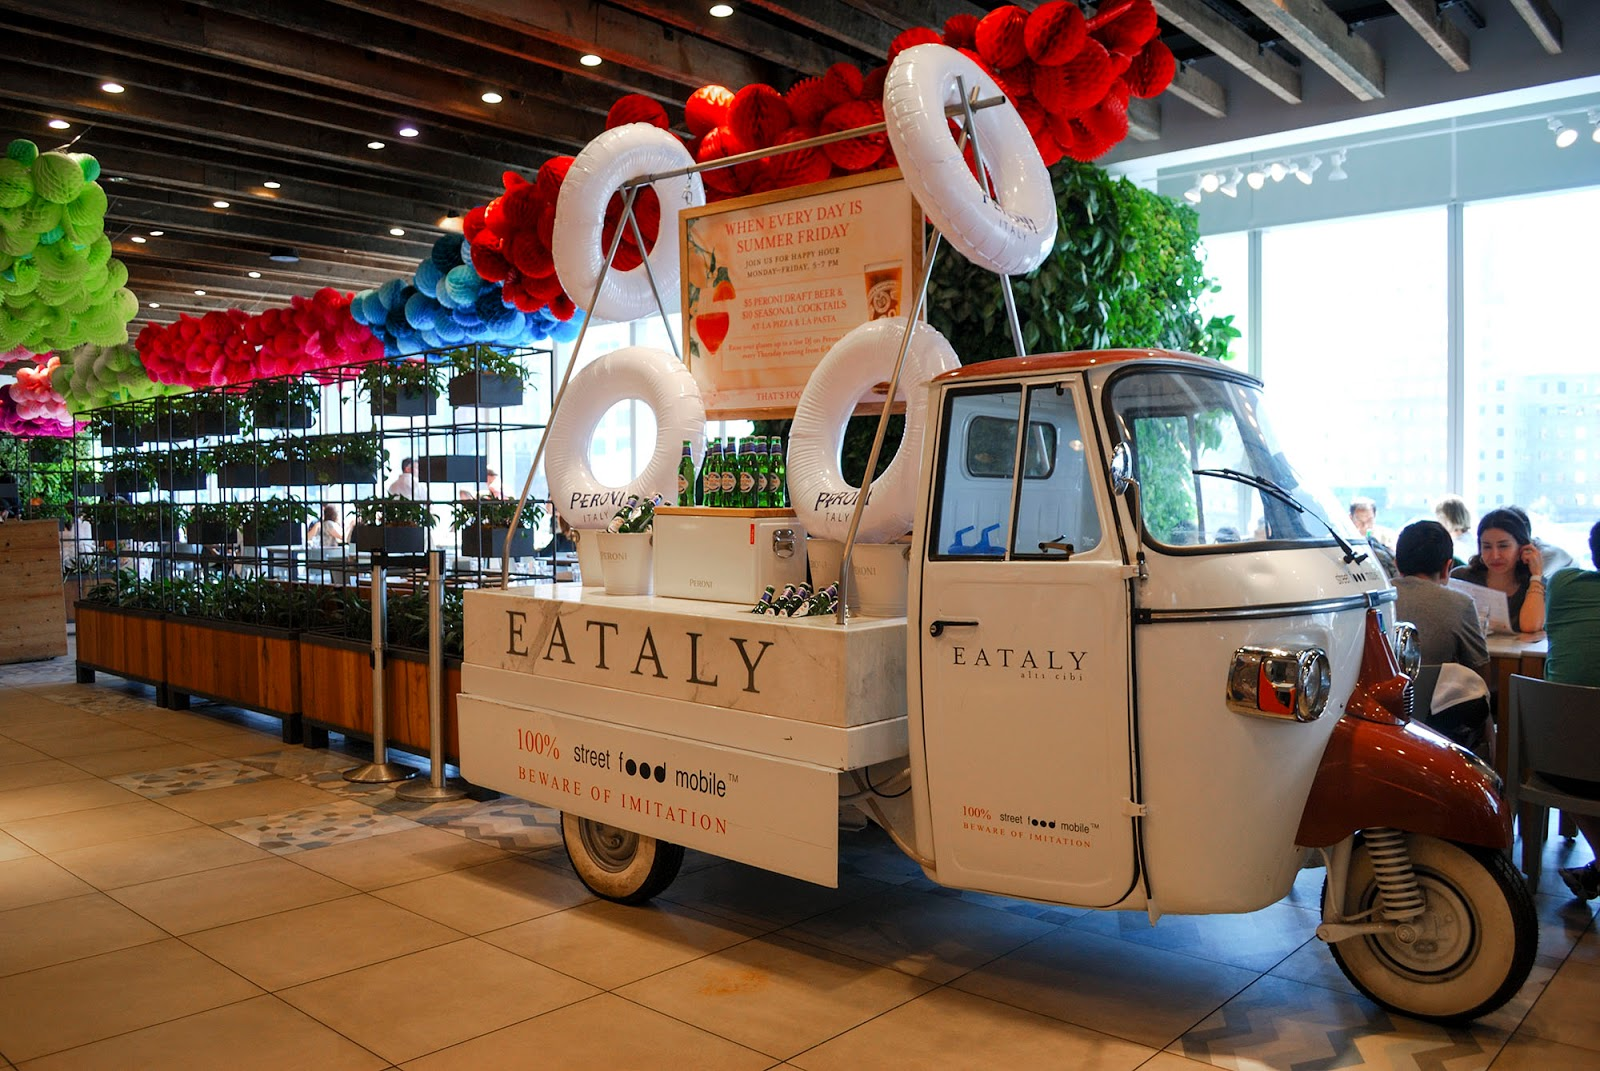 new york itinerary guide plan eataly westfield wtc food market restaurant manhattan